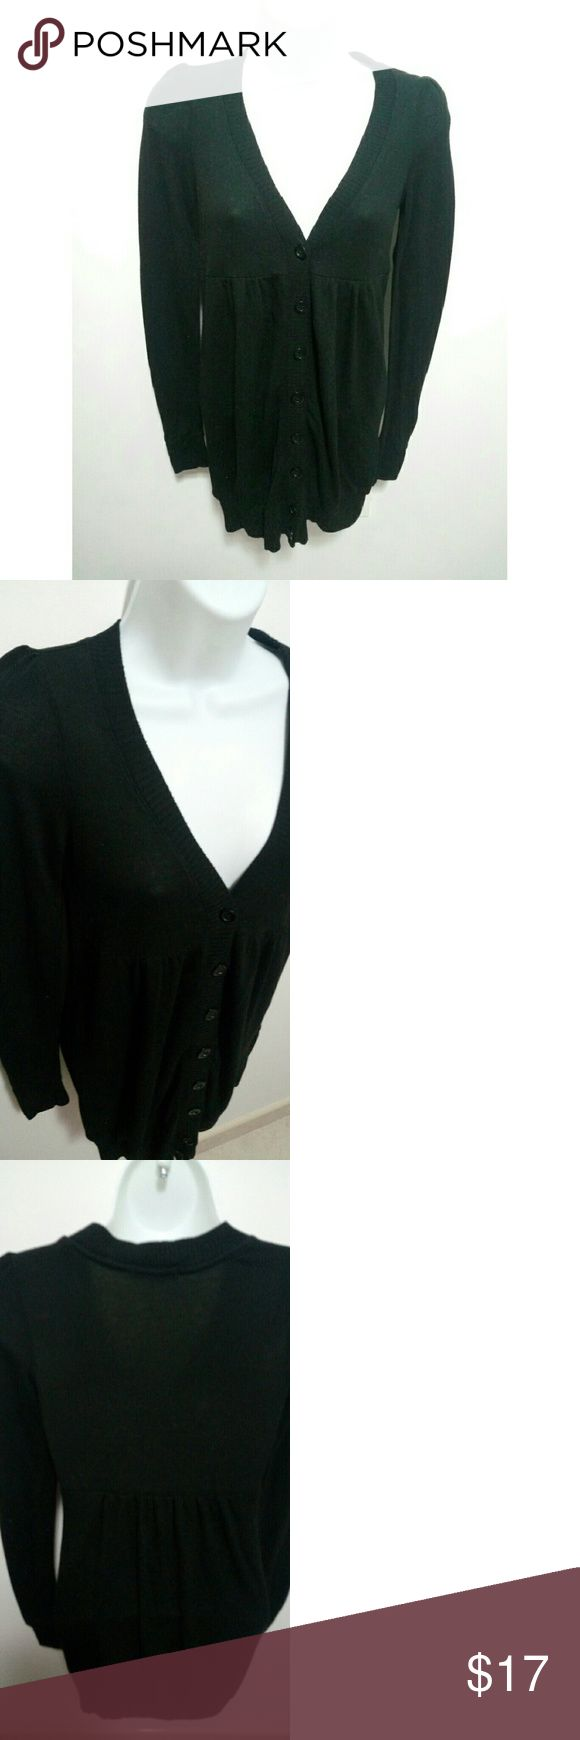 Forever 21 long black cardigan sweater Forever 21 long black cardigan. Thin slouchy sweater. V-neck. Size S/P. Long, perfect when paired with leggings.   In perfect condition. Never used.   #pakainin #likenew #neverused Forever 21 Sweaters Cardigans